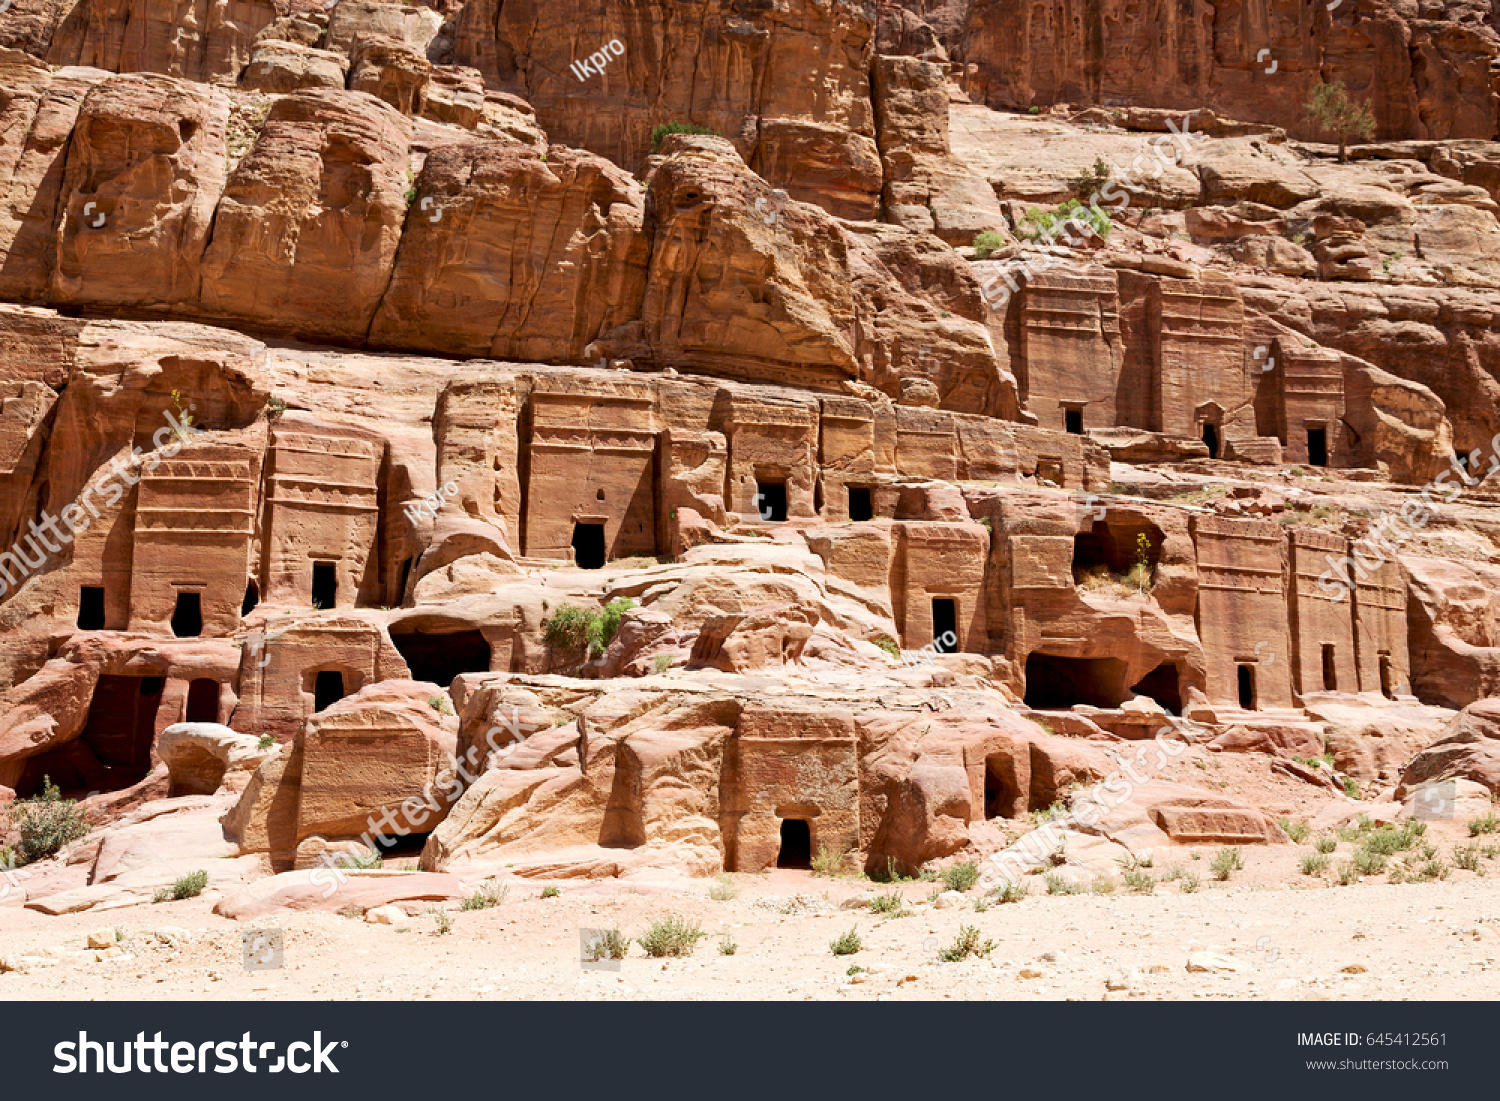 The ancient city, the capital of Idumea (Edom), later the capital of Nabatean 10